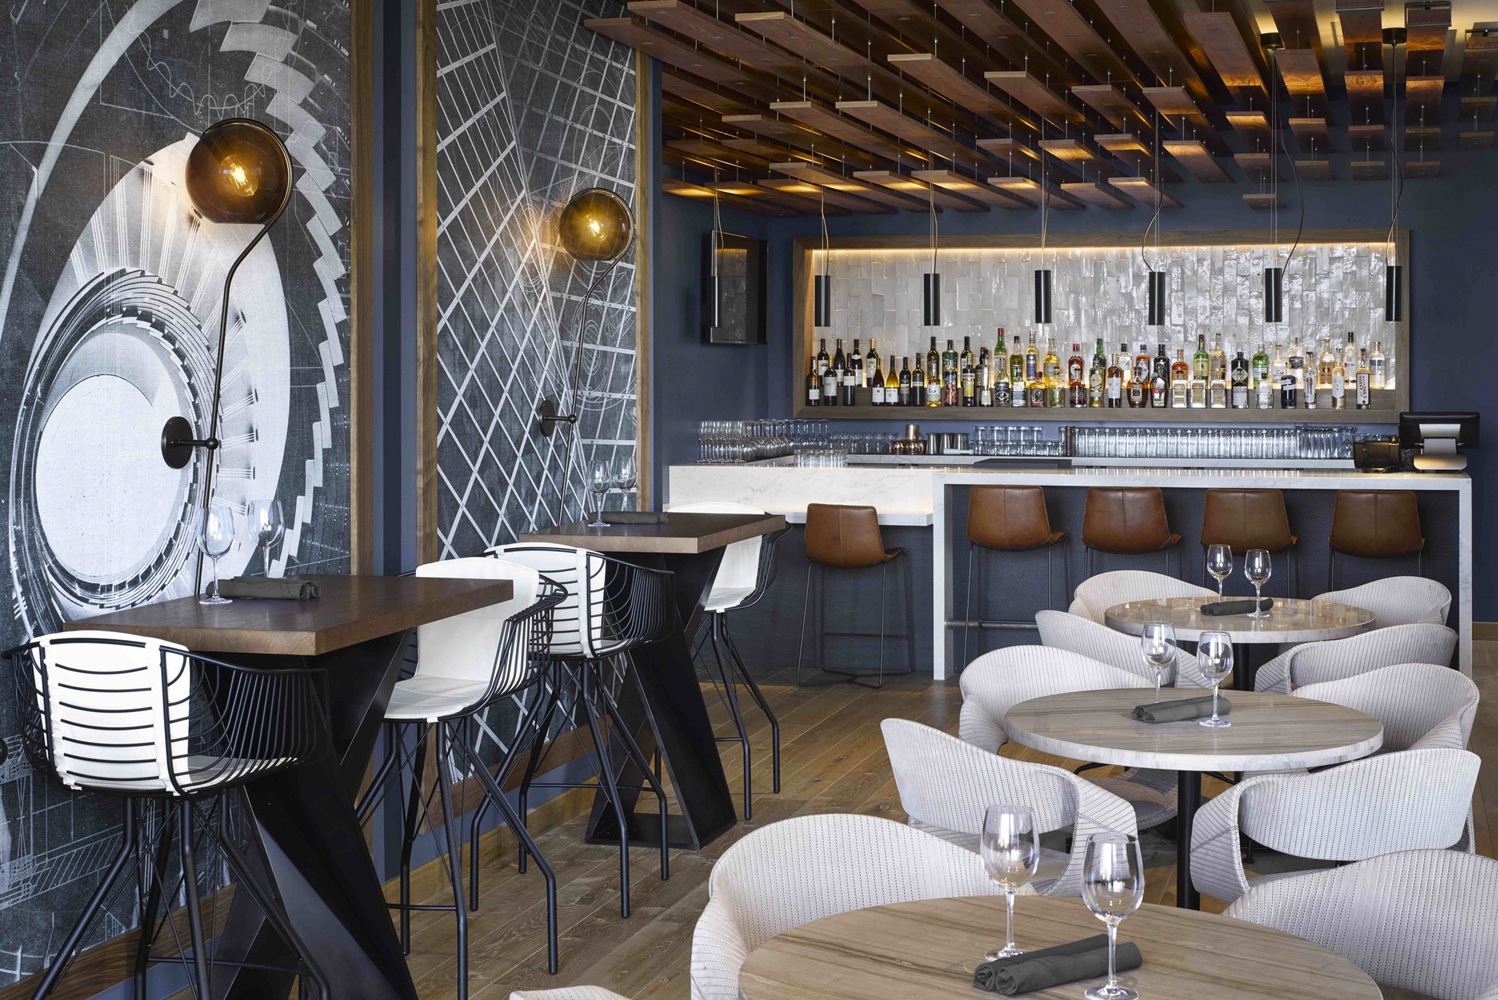 The 142-room boutique hotel occupies the first 10 floors of the 42-story Arrivé tower, a new-build, mixed-use property.